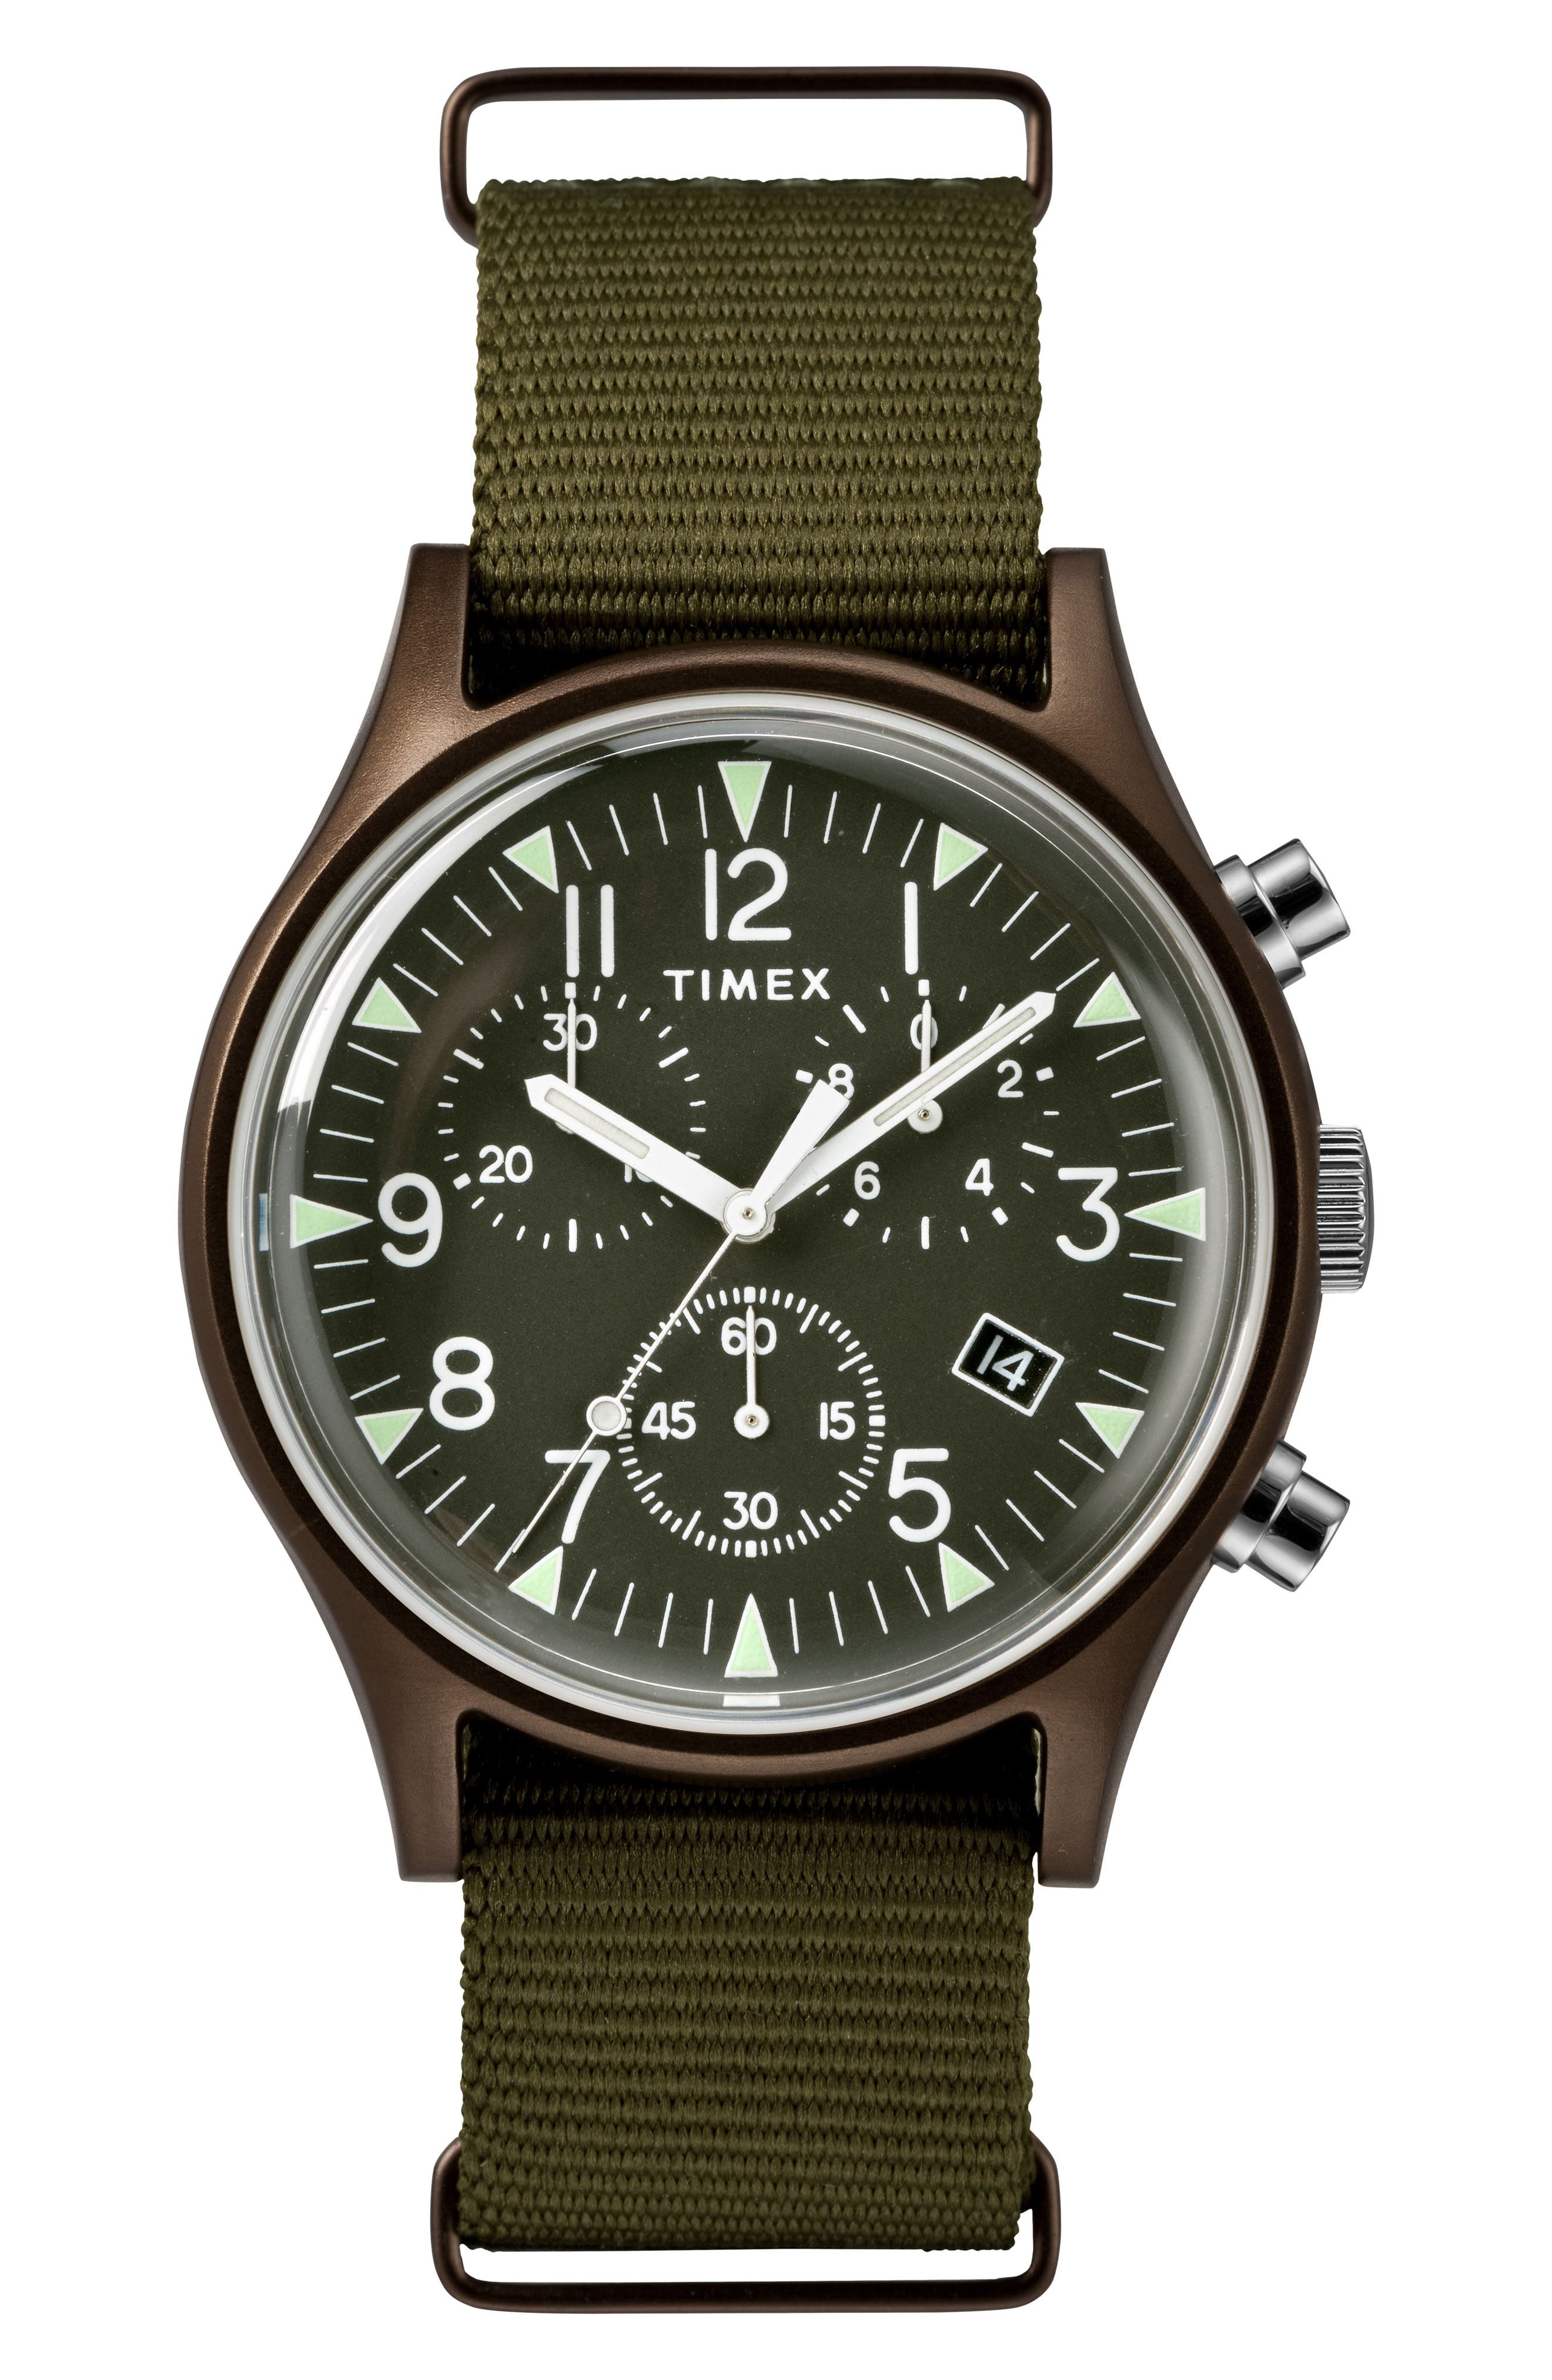 MK1 Chronograph Nylon Strap Watch,                         Main,                         color, Olive